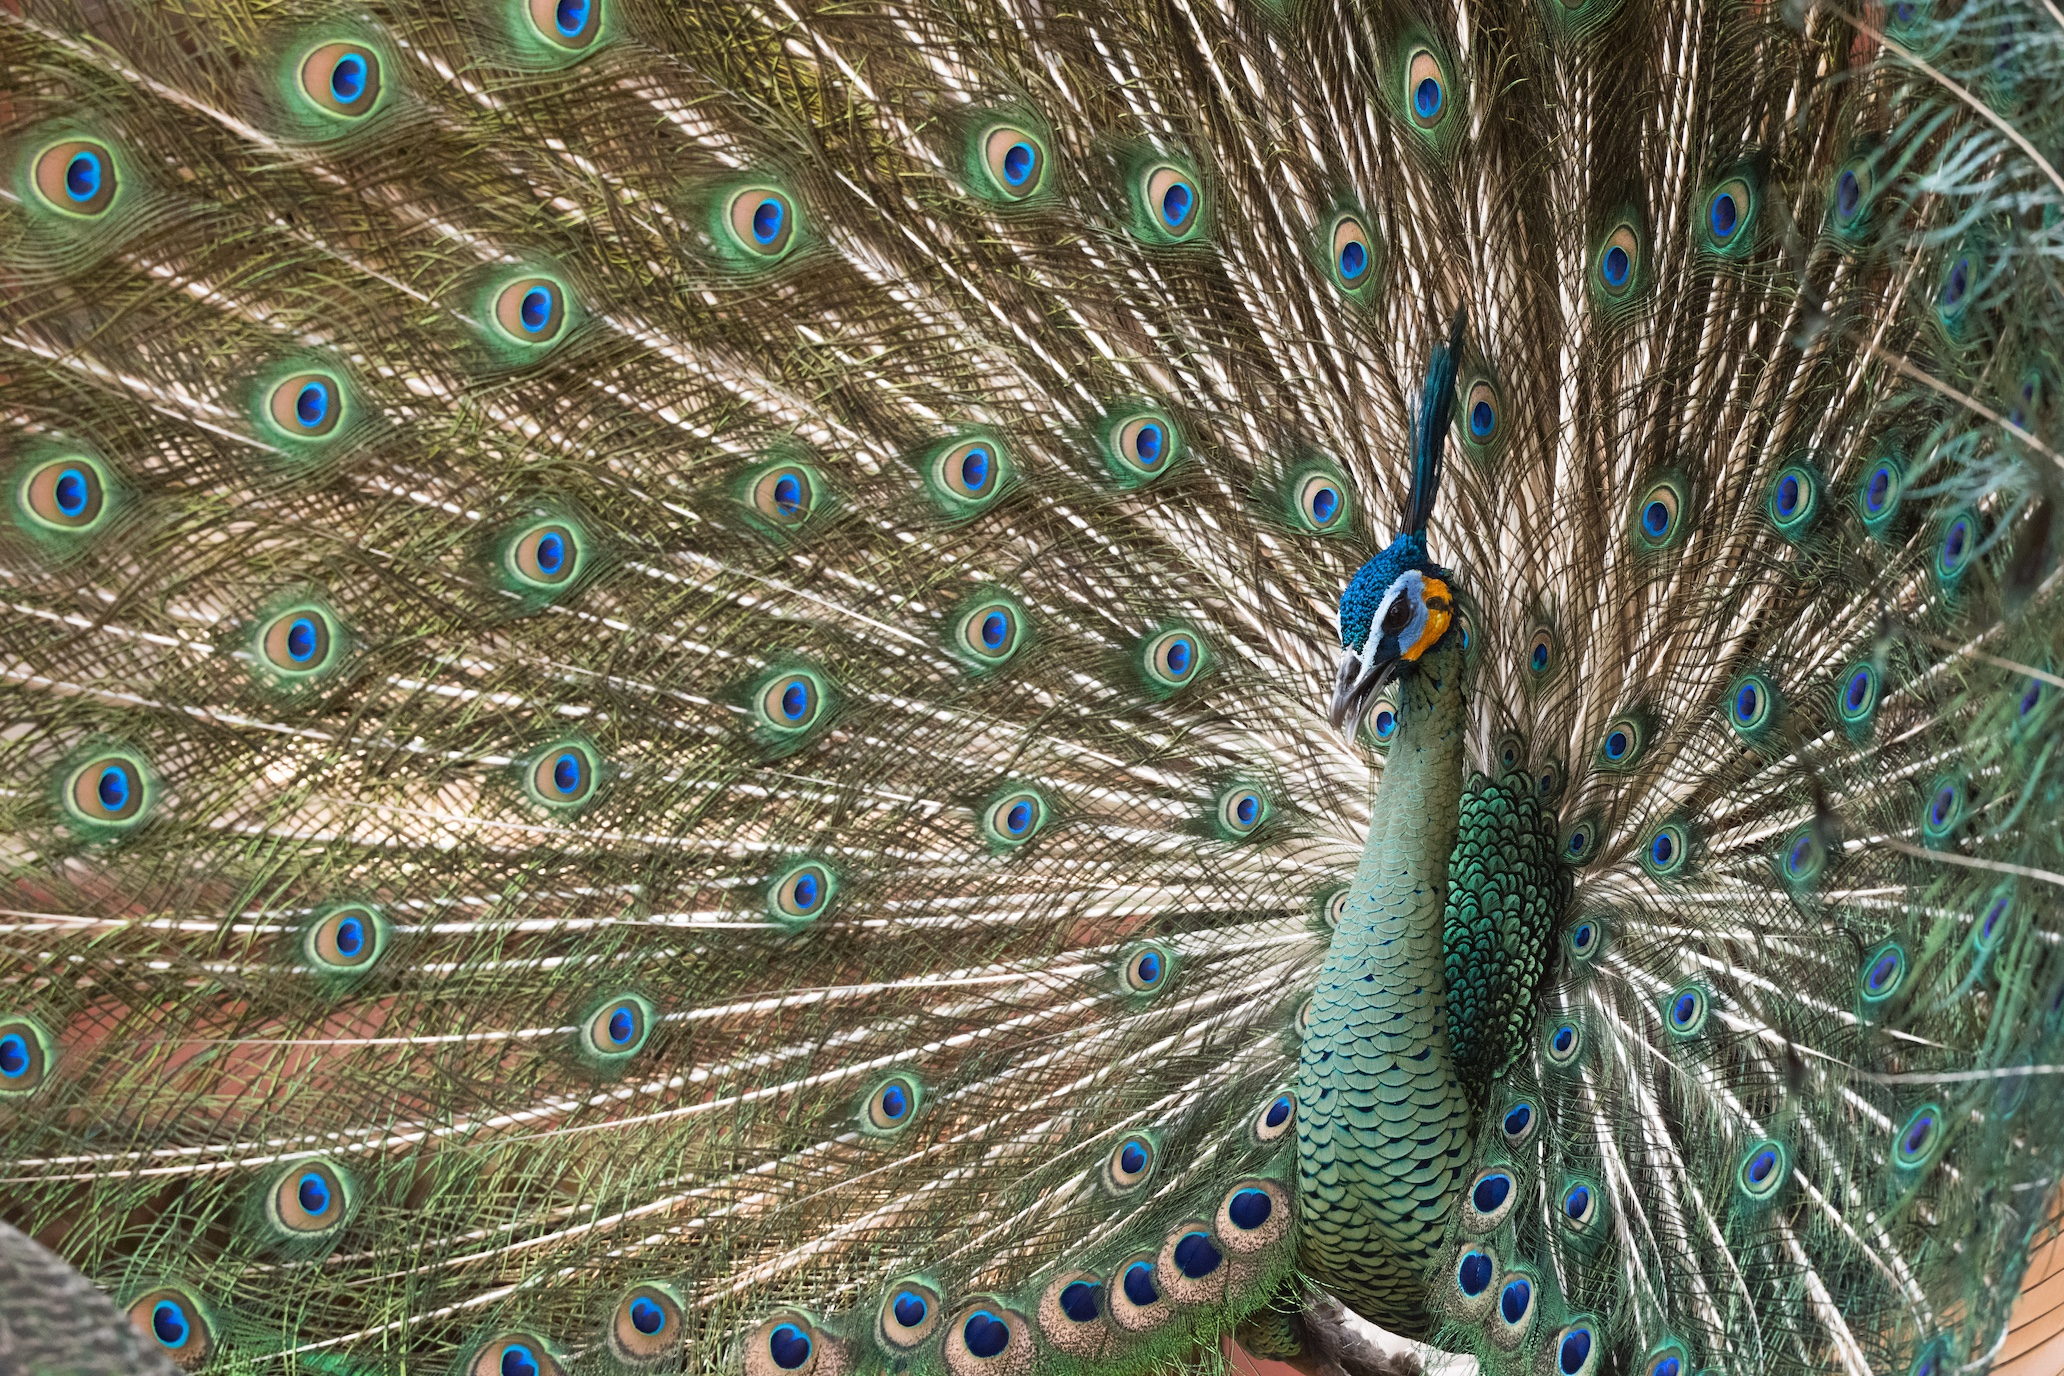 Green peafowl flourish in Thailand's northern forests, but conflict looms